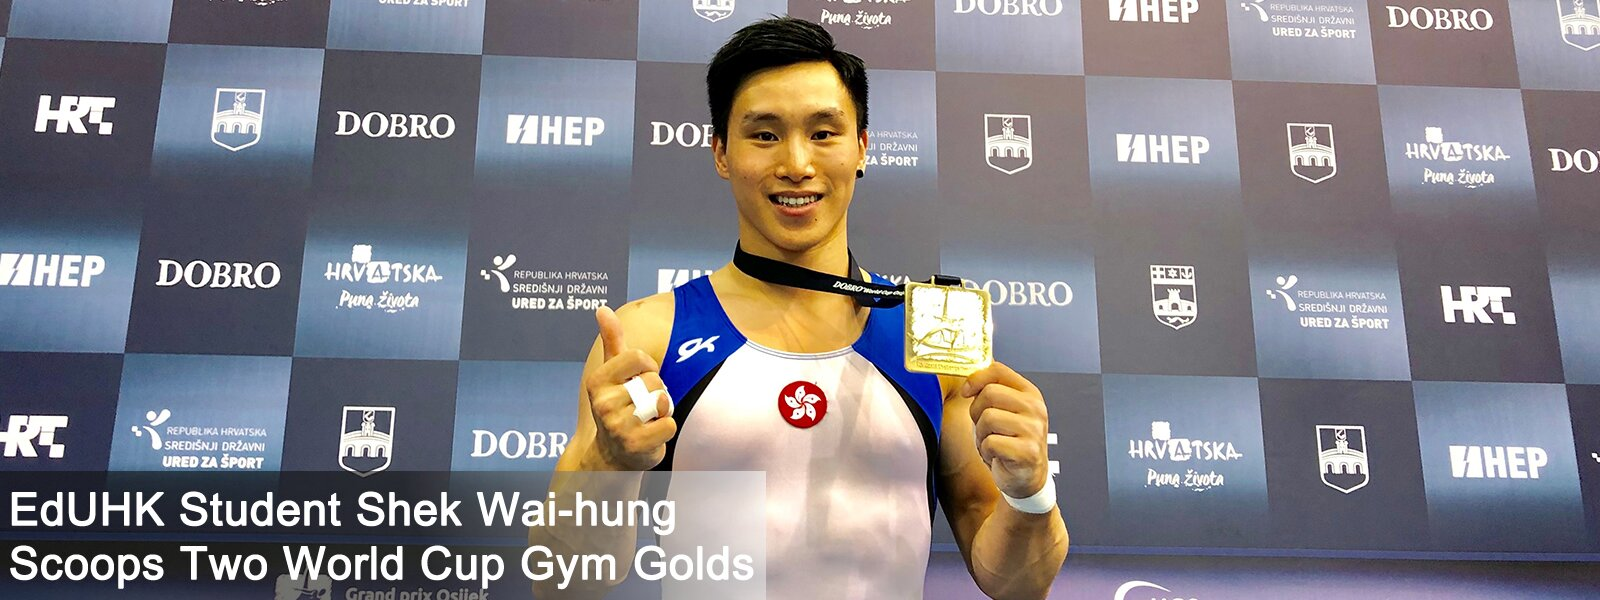 EdUHK Student Shek Wai-hung Scoops Two World Cup Gym Golds